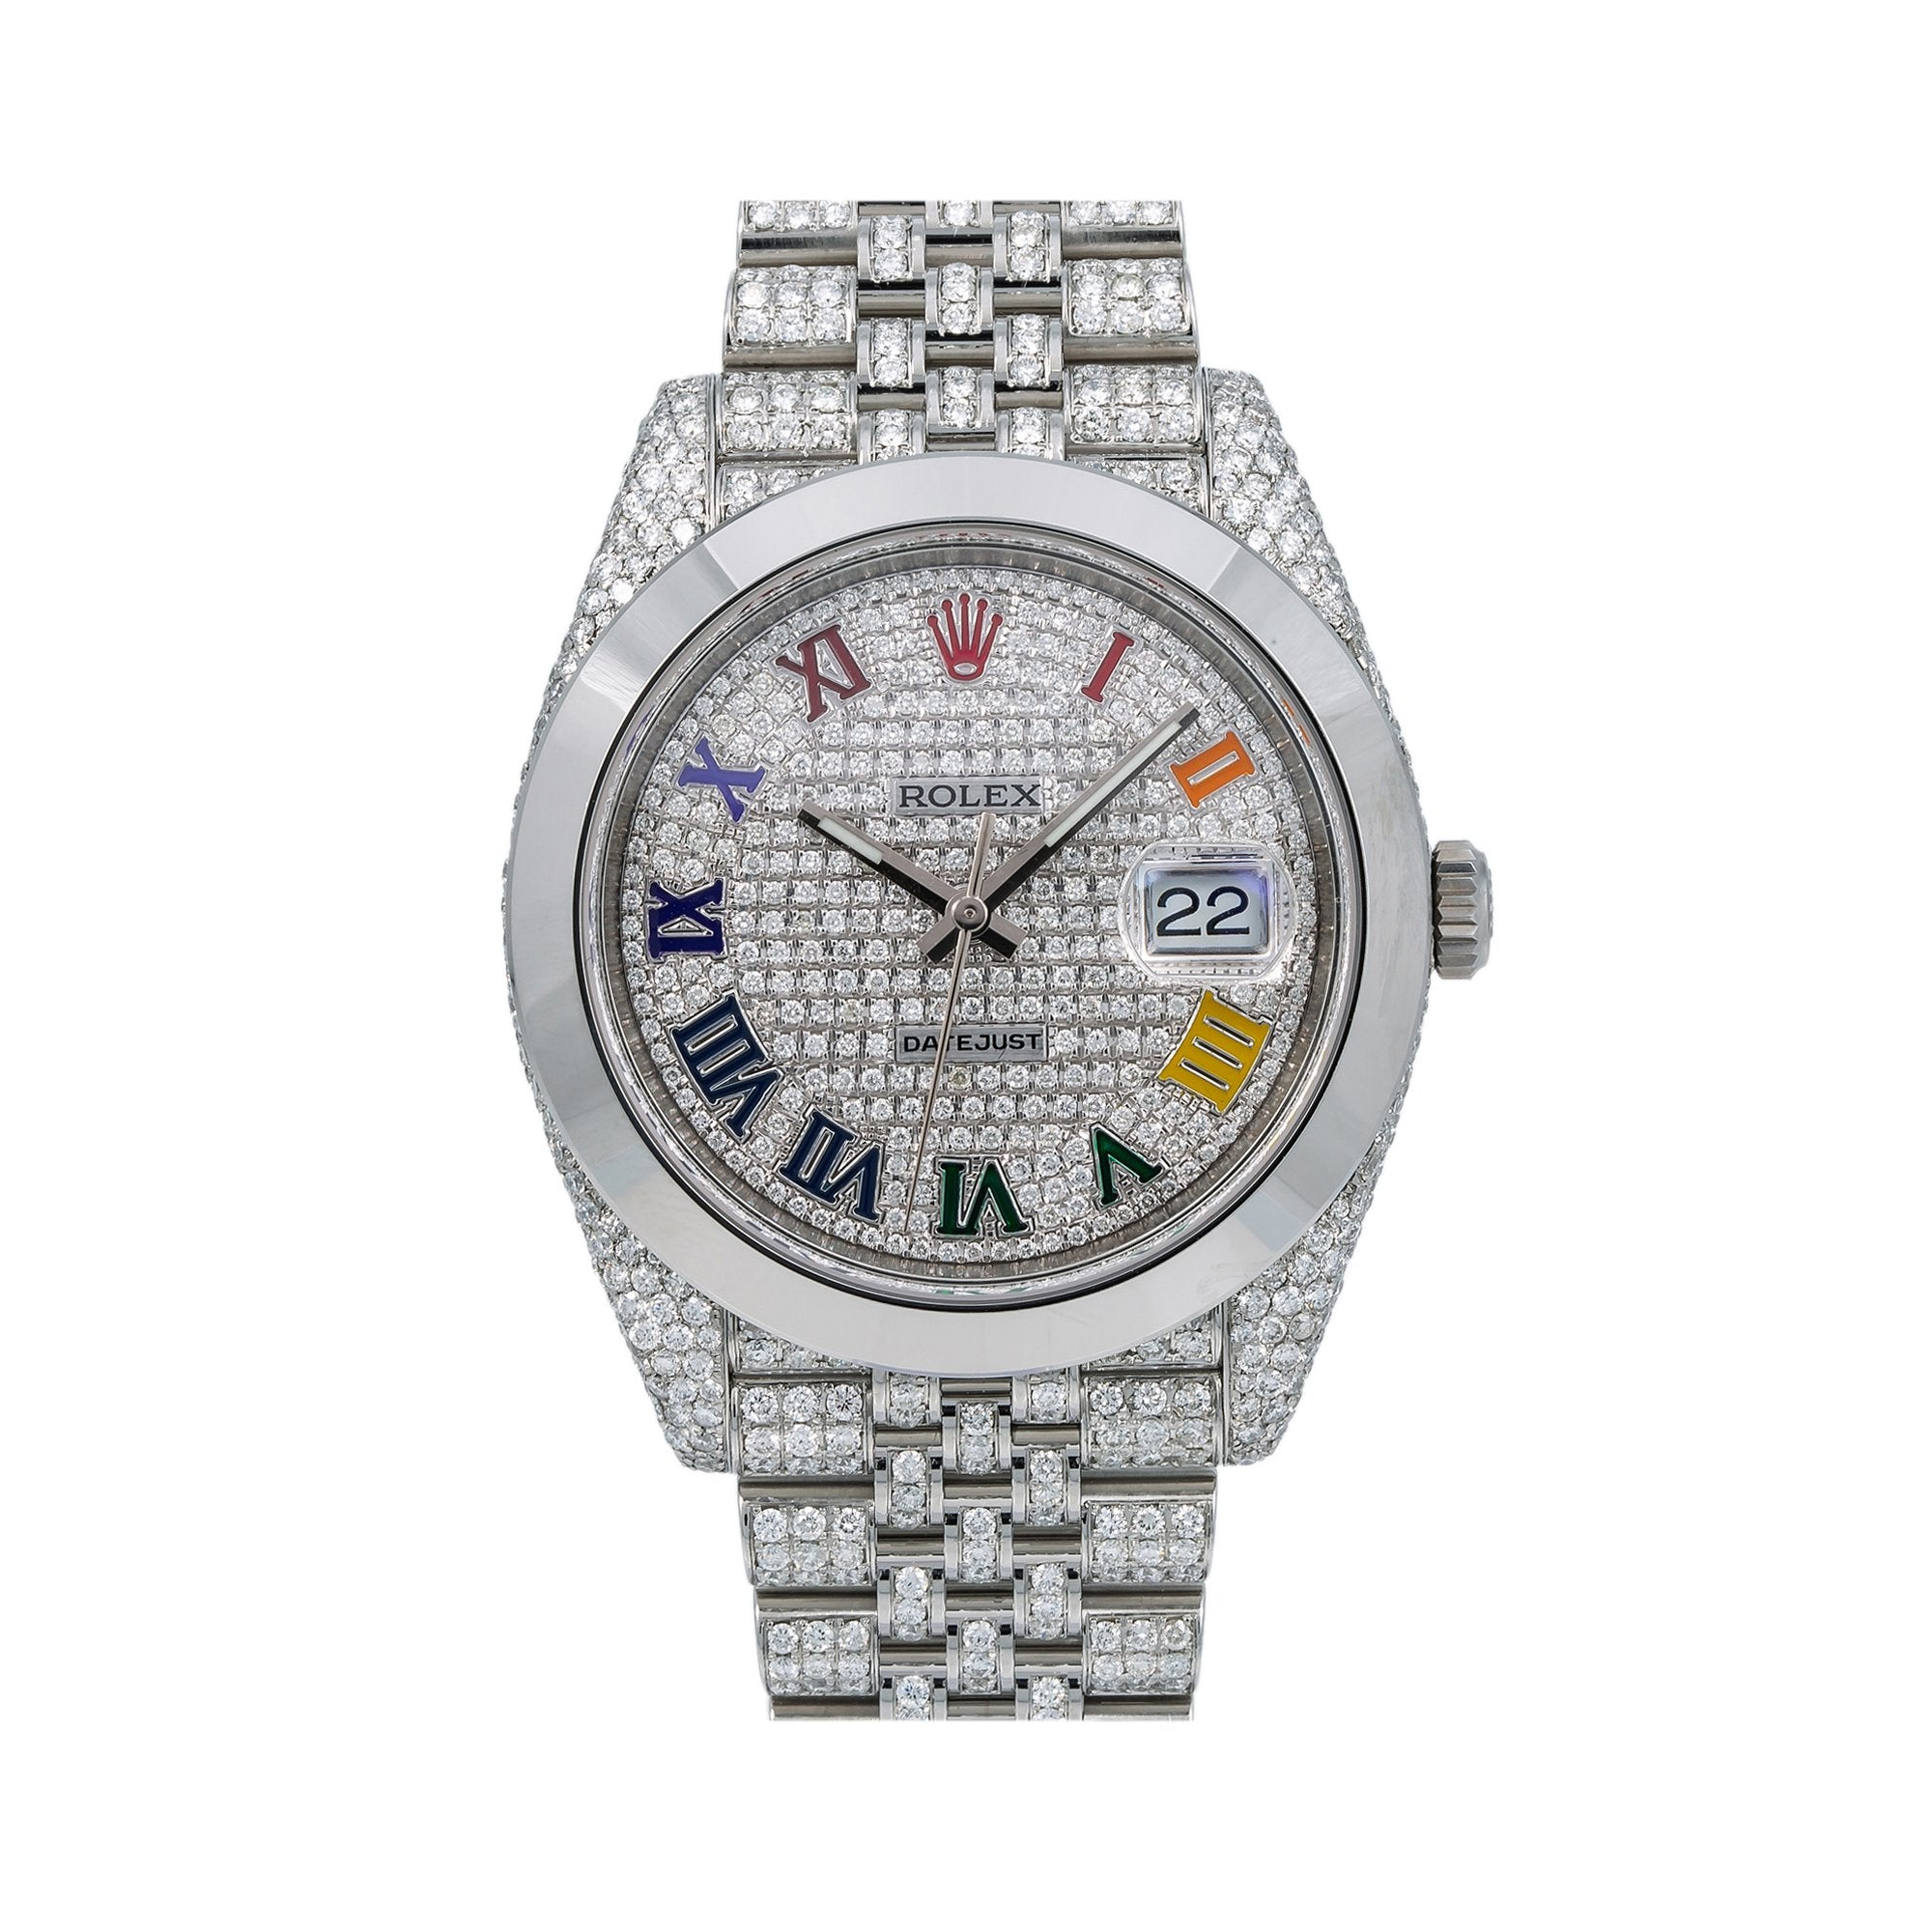 Rolex Datejust Diamond Watch, 126333 41mm, Silver Diamond Dial With Stainless Steel Jubilee Bracelet